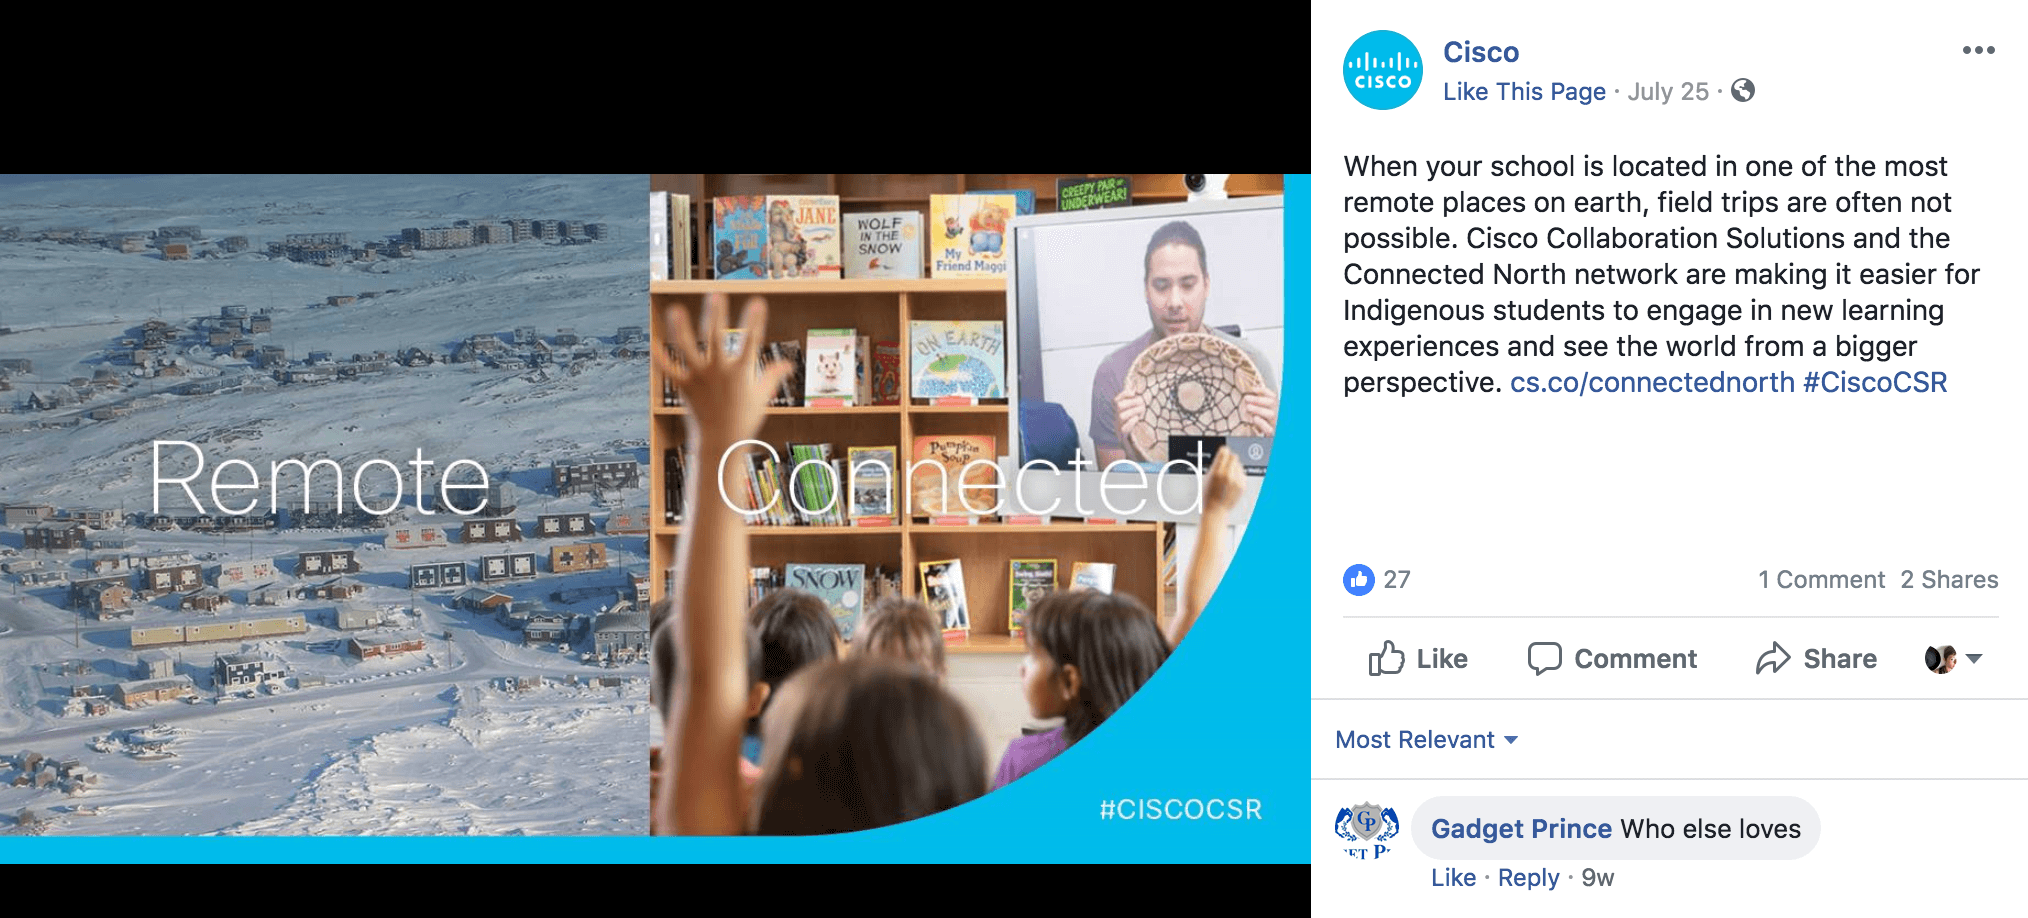 Cisco Facebook Content